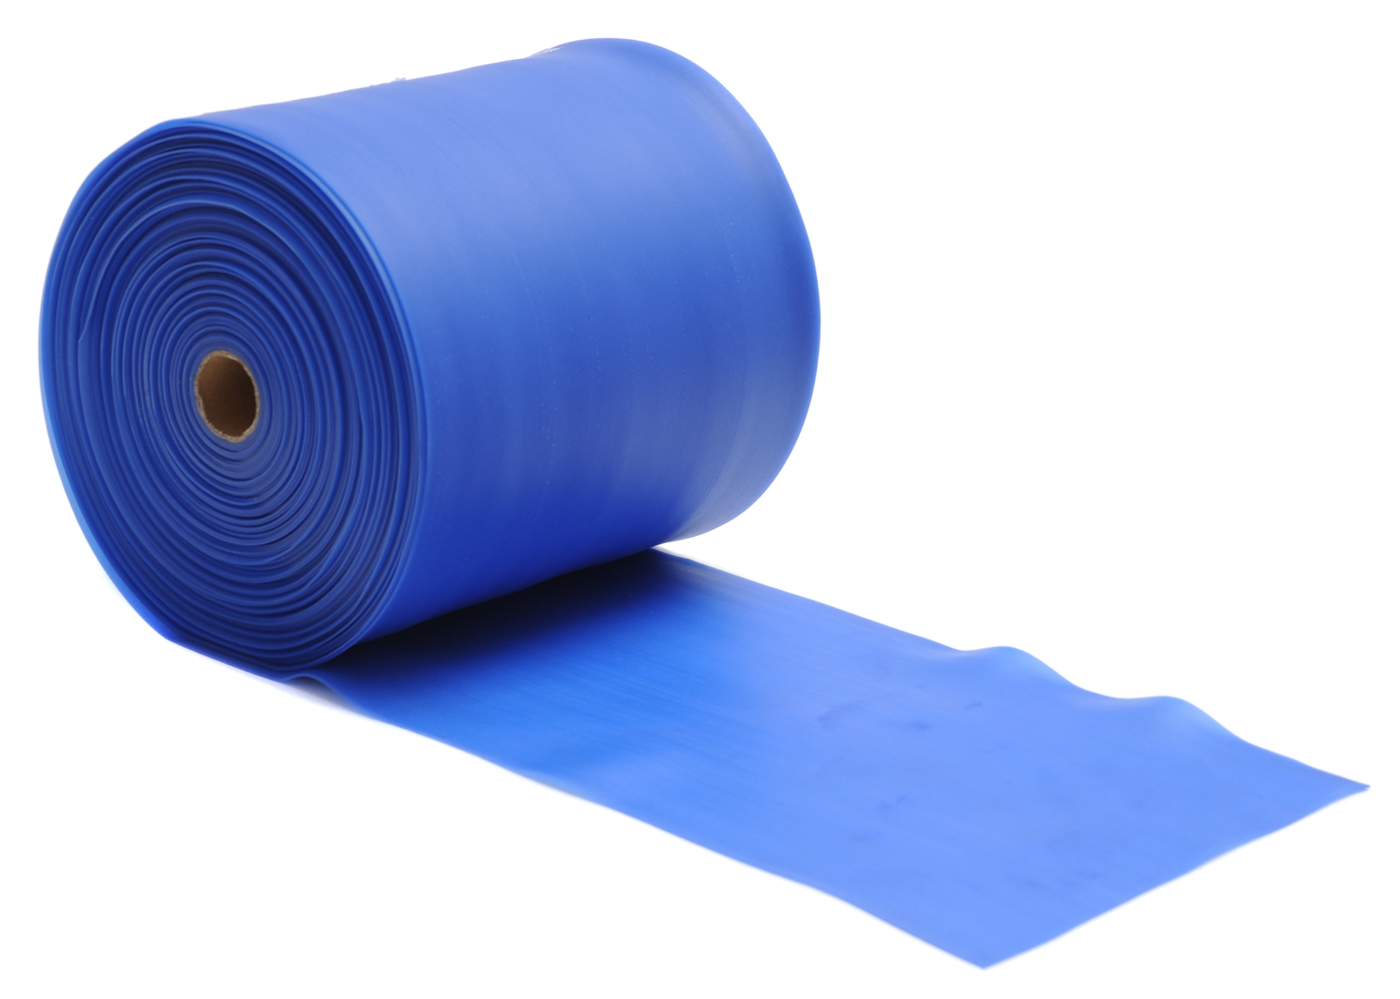 Pilates Stretchband - latexfrei - 25m Rolle